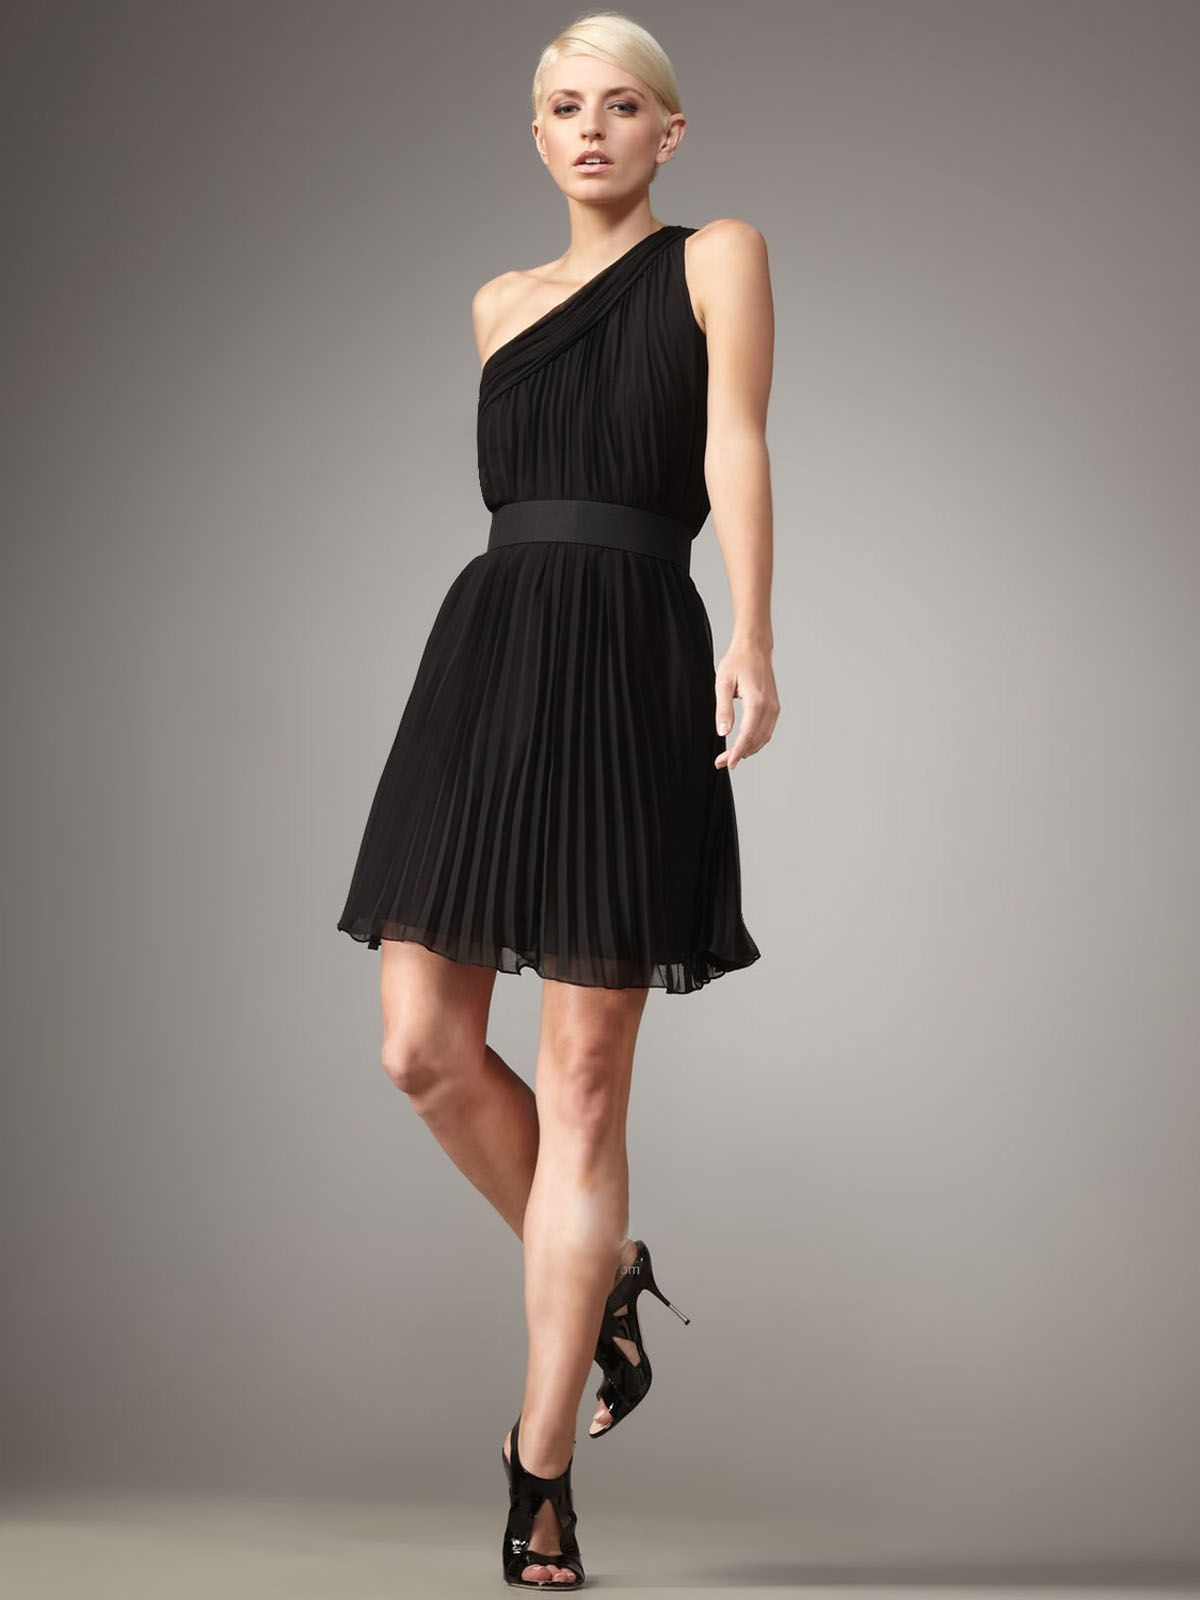 Black modern dress - Few Things Are As Covetable And As Versatile As A Chiffon Black Dress Whether It S